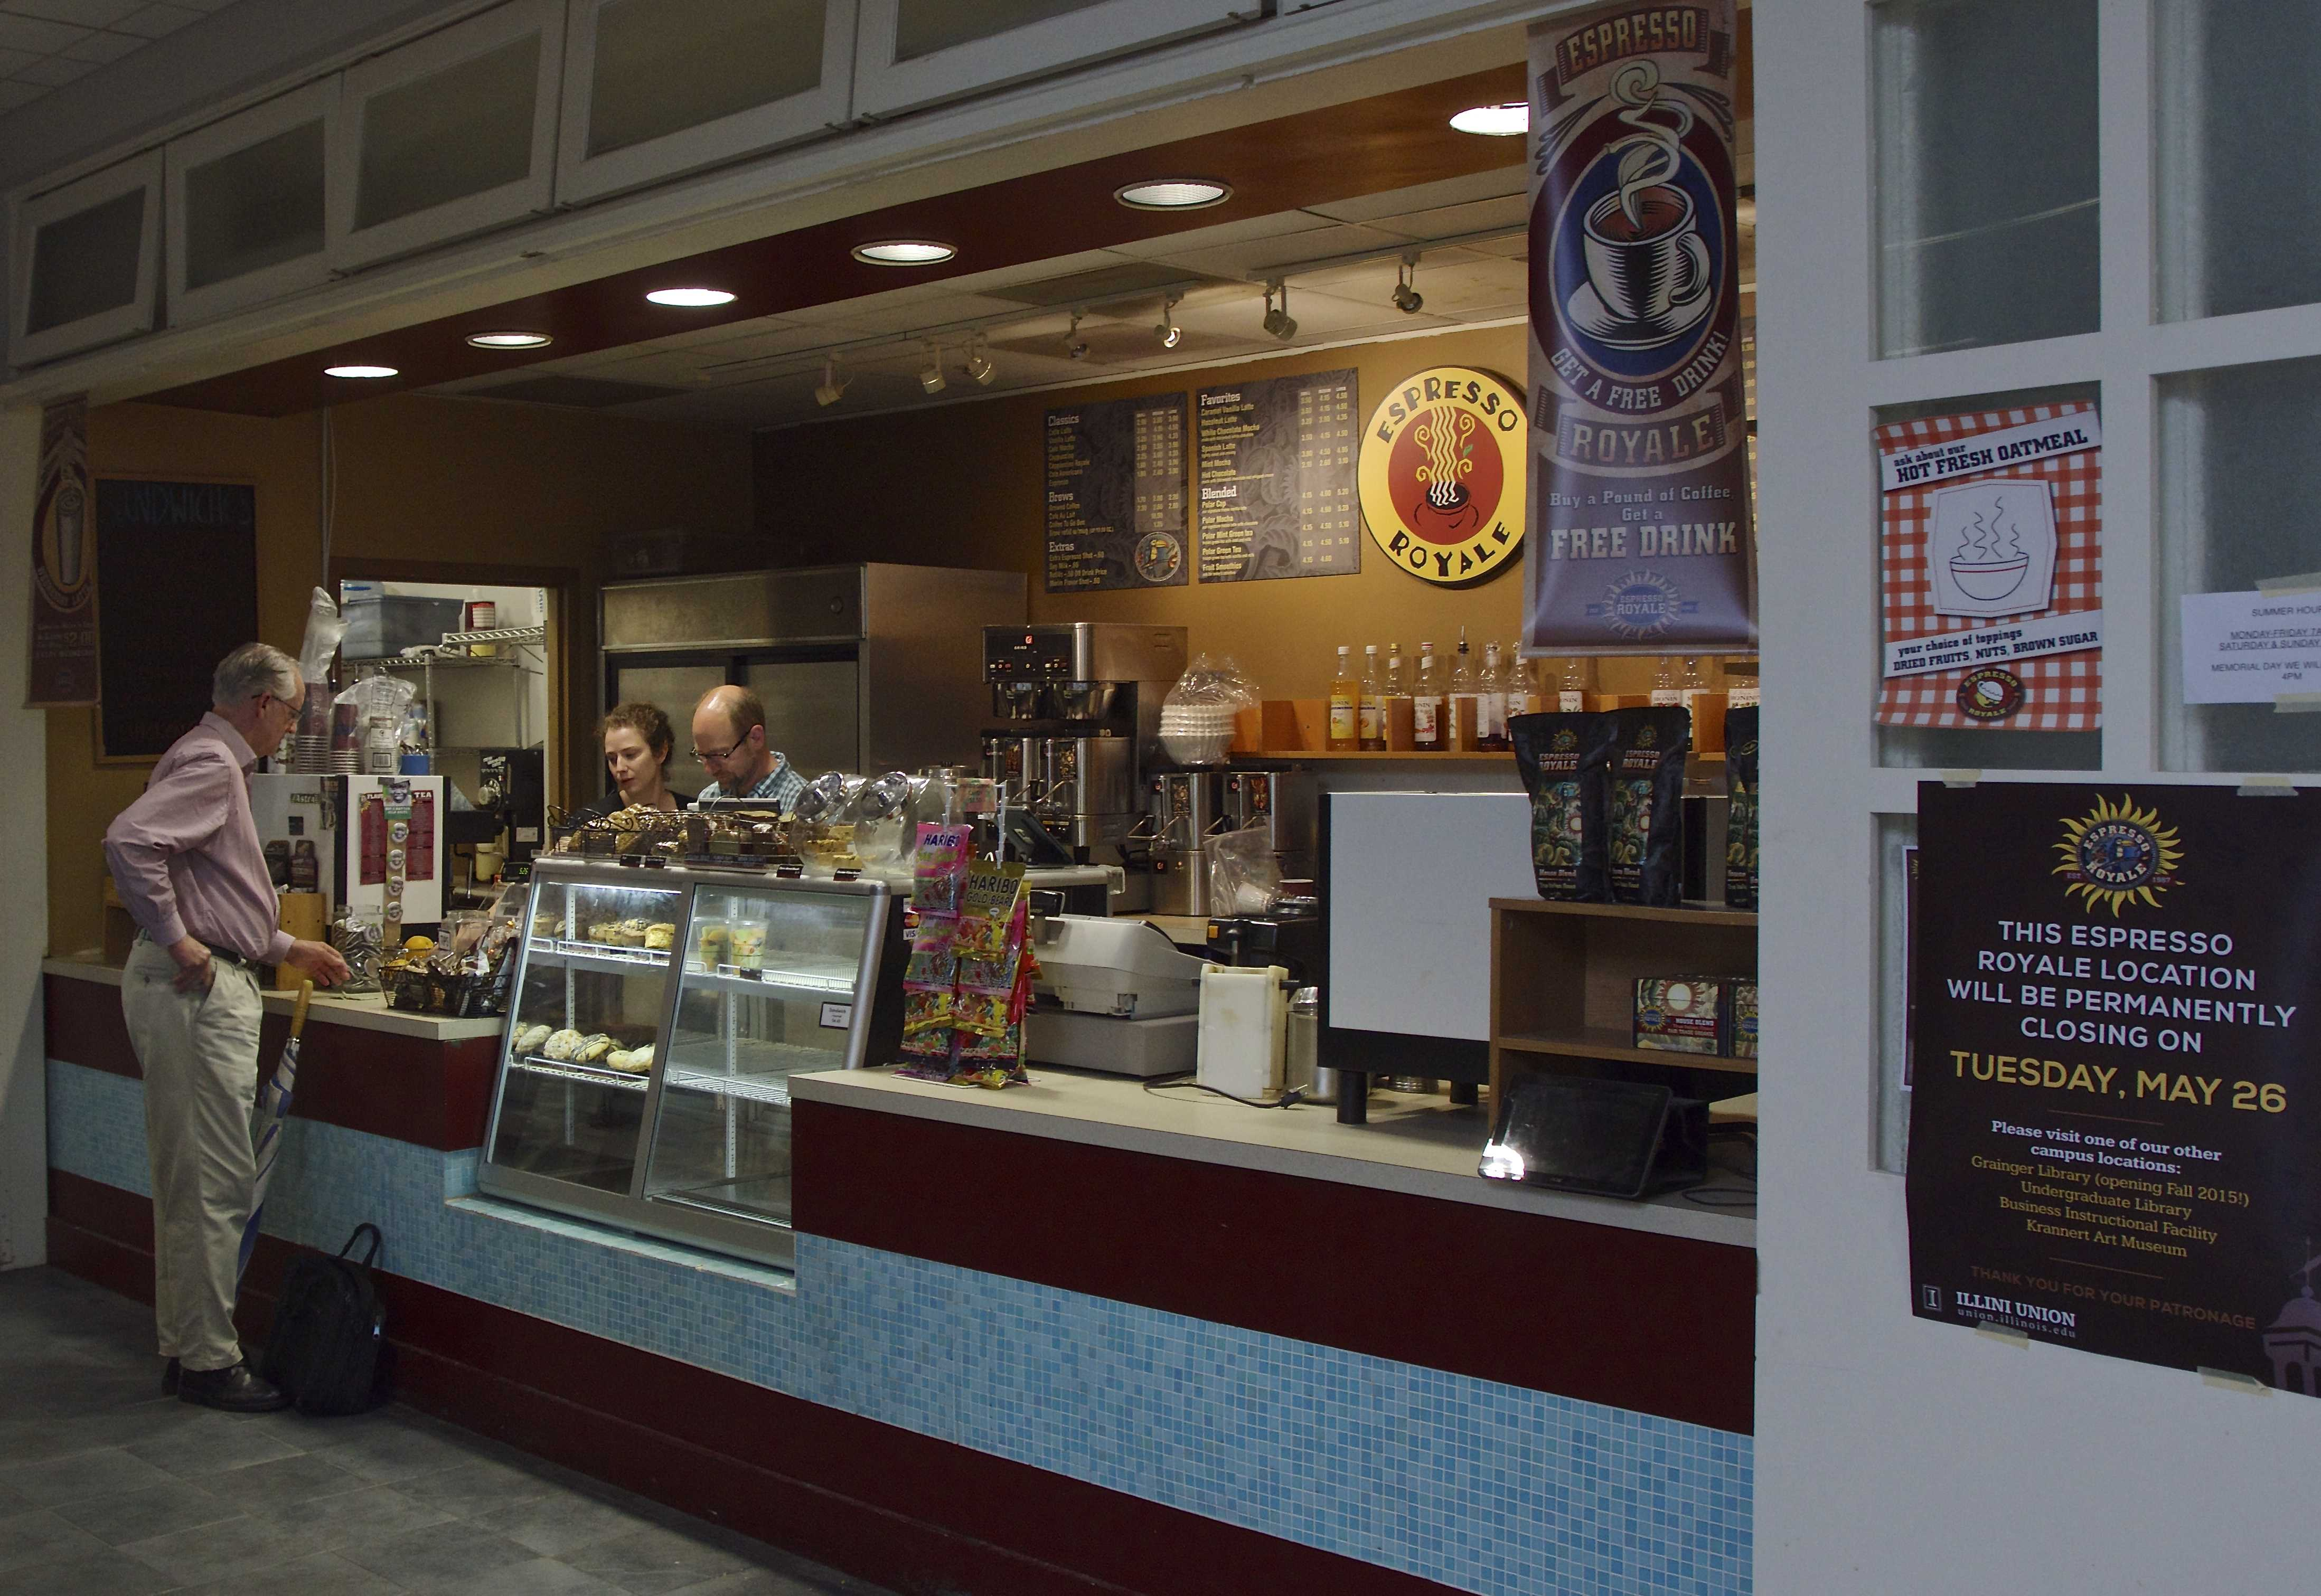 The Espresso Royale located in the Illini Union Courtyard Cafe operated for the last time on Tuesday, May 26, 2015. A Starbucks will open in the same location.